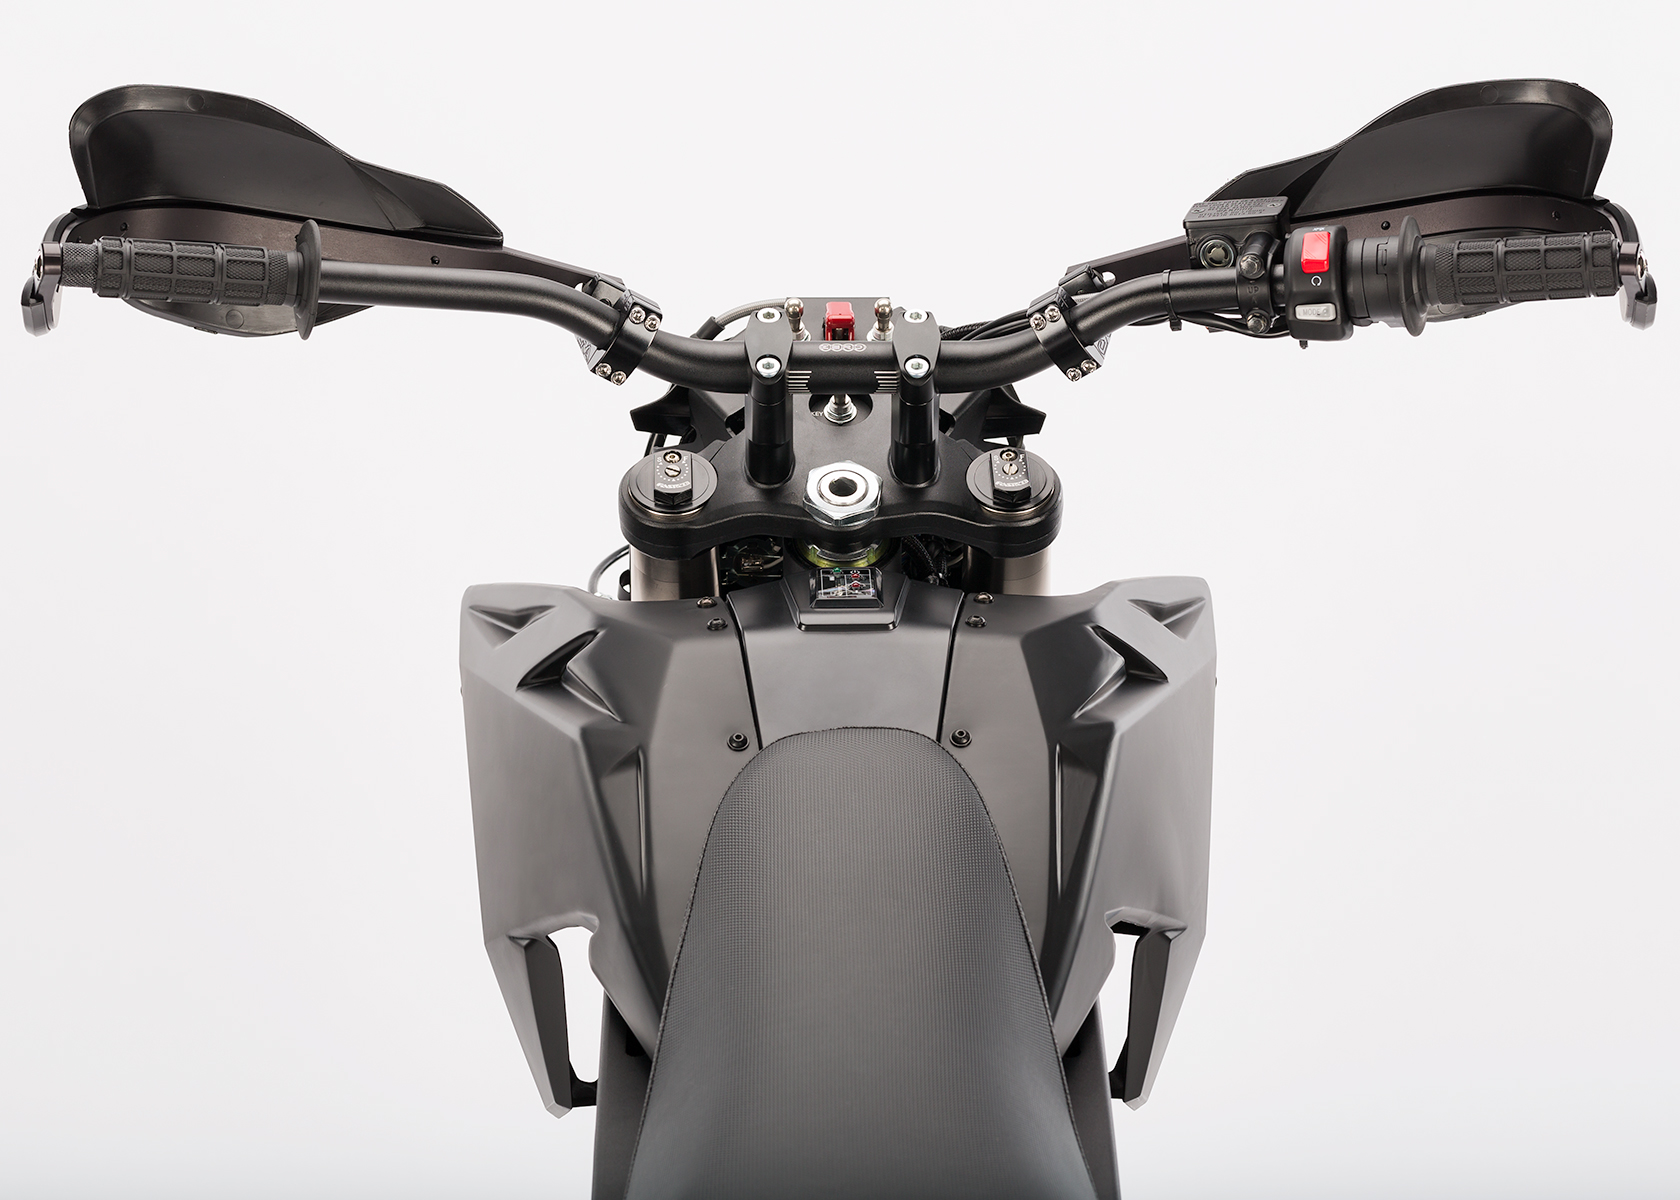 2014 Zero Police Electric Motorcycle: Rider View